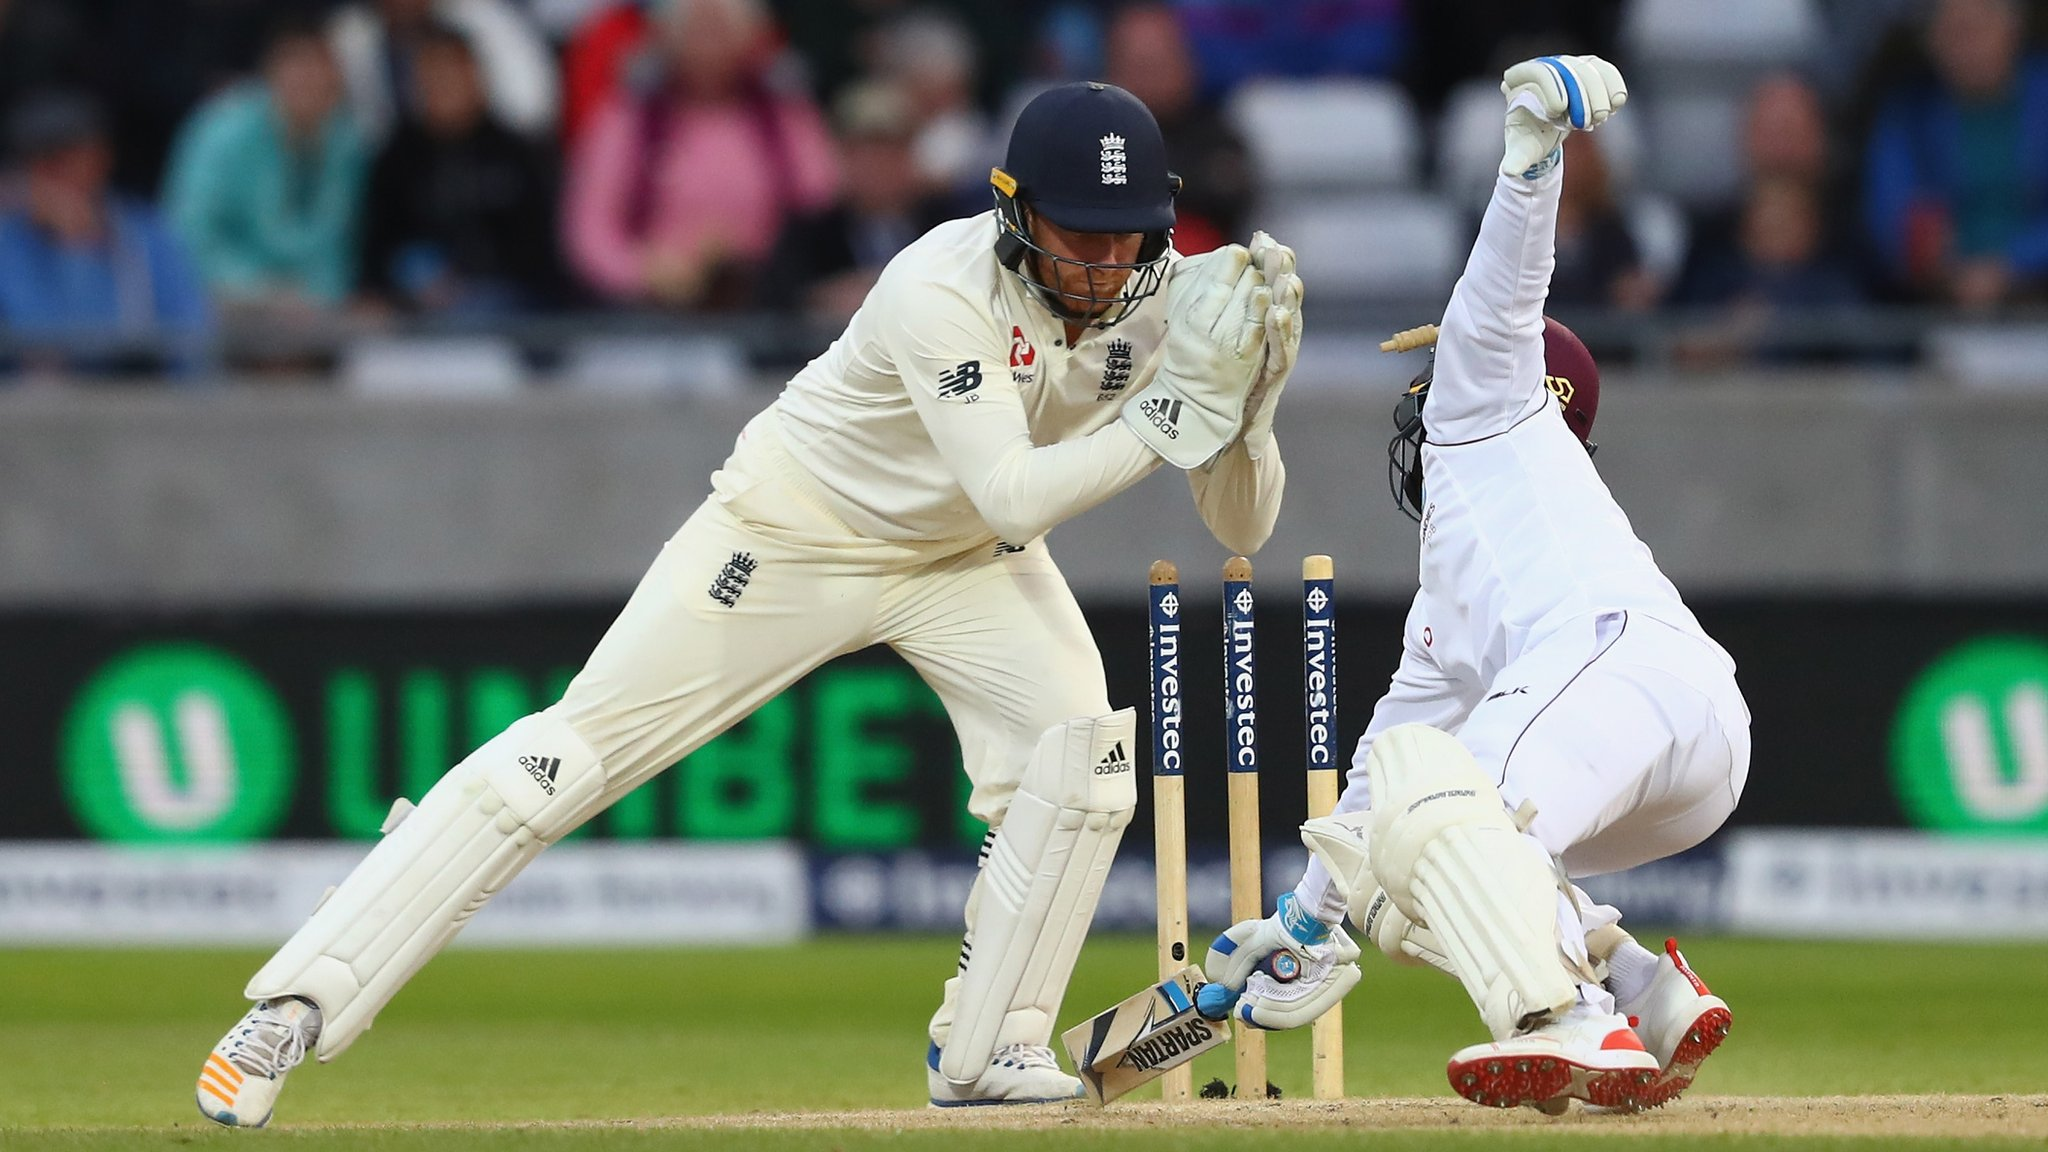 England v West Indies: Hosts race to innings-and-209-run win at Edgbaston